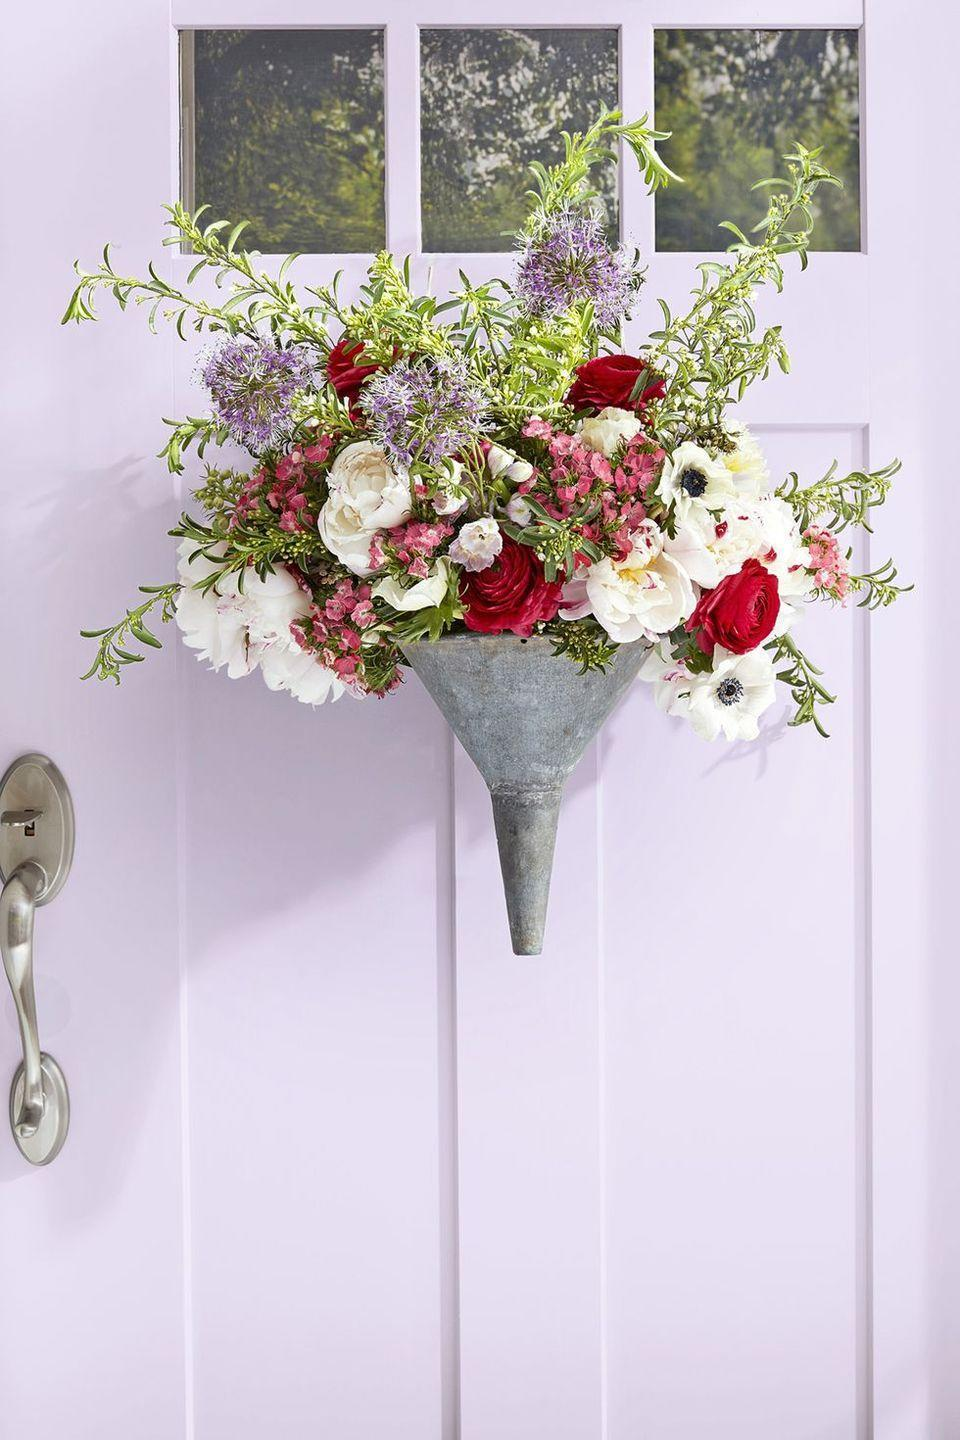 """<p>A galvanized funnel becomes a stunning vase in this simple DIY. Just insert floral foam into the pocket of the funnel, drill a hole in the back, loop wire through, and hang. Arrange your favorite flowers and switch them out as the weeks go on!</p><p><a class=""""link rapid-noclick-resp"""" href=""""https://www.amazon.com/s?k=artificial+flowers&ref=nb_sb_noss&tag=syn-yahoo-20&ascsubtag=%5Bartid%7C10050.g.4088%5Bsrc%7Cyahoo-us"""" rel=""""nofollow noopener"""" target=""""_blank"""" data-ylk=""""slk:SHOP ARTIFICIAL FLOWERS"""">SHOP ARTIFICIAL FLOWERS</a></p>"""